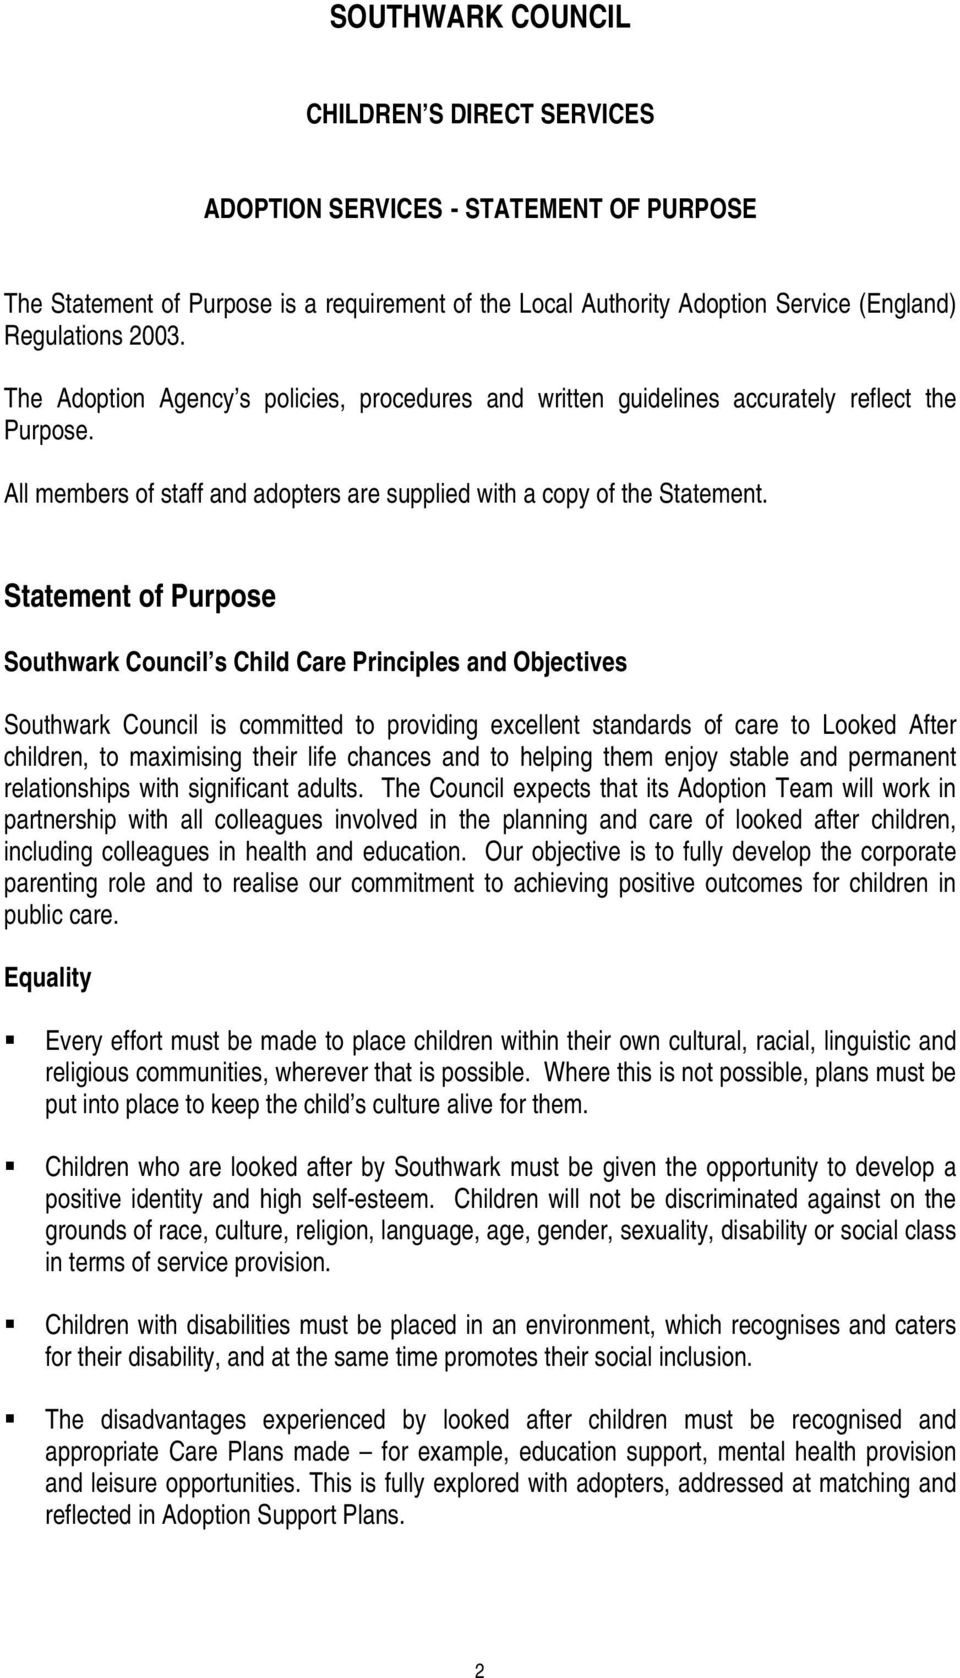 Statement of Purpose Southwark Council s Child Care Principles and Objectives Southwark Council is committed to providing excellent standards of care to Looked After children, to maximising their